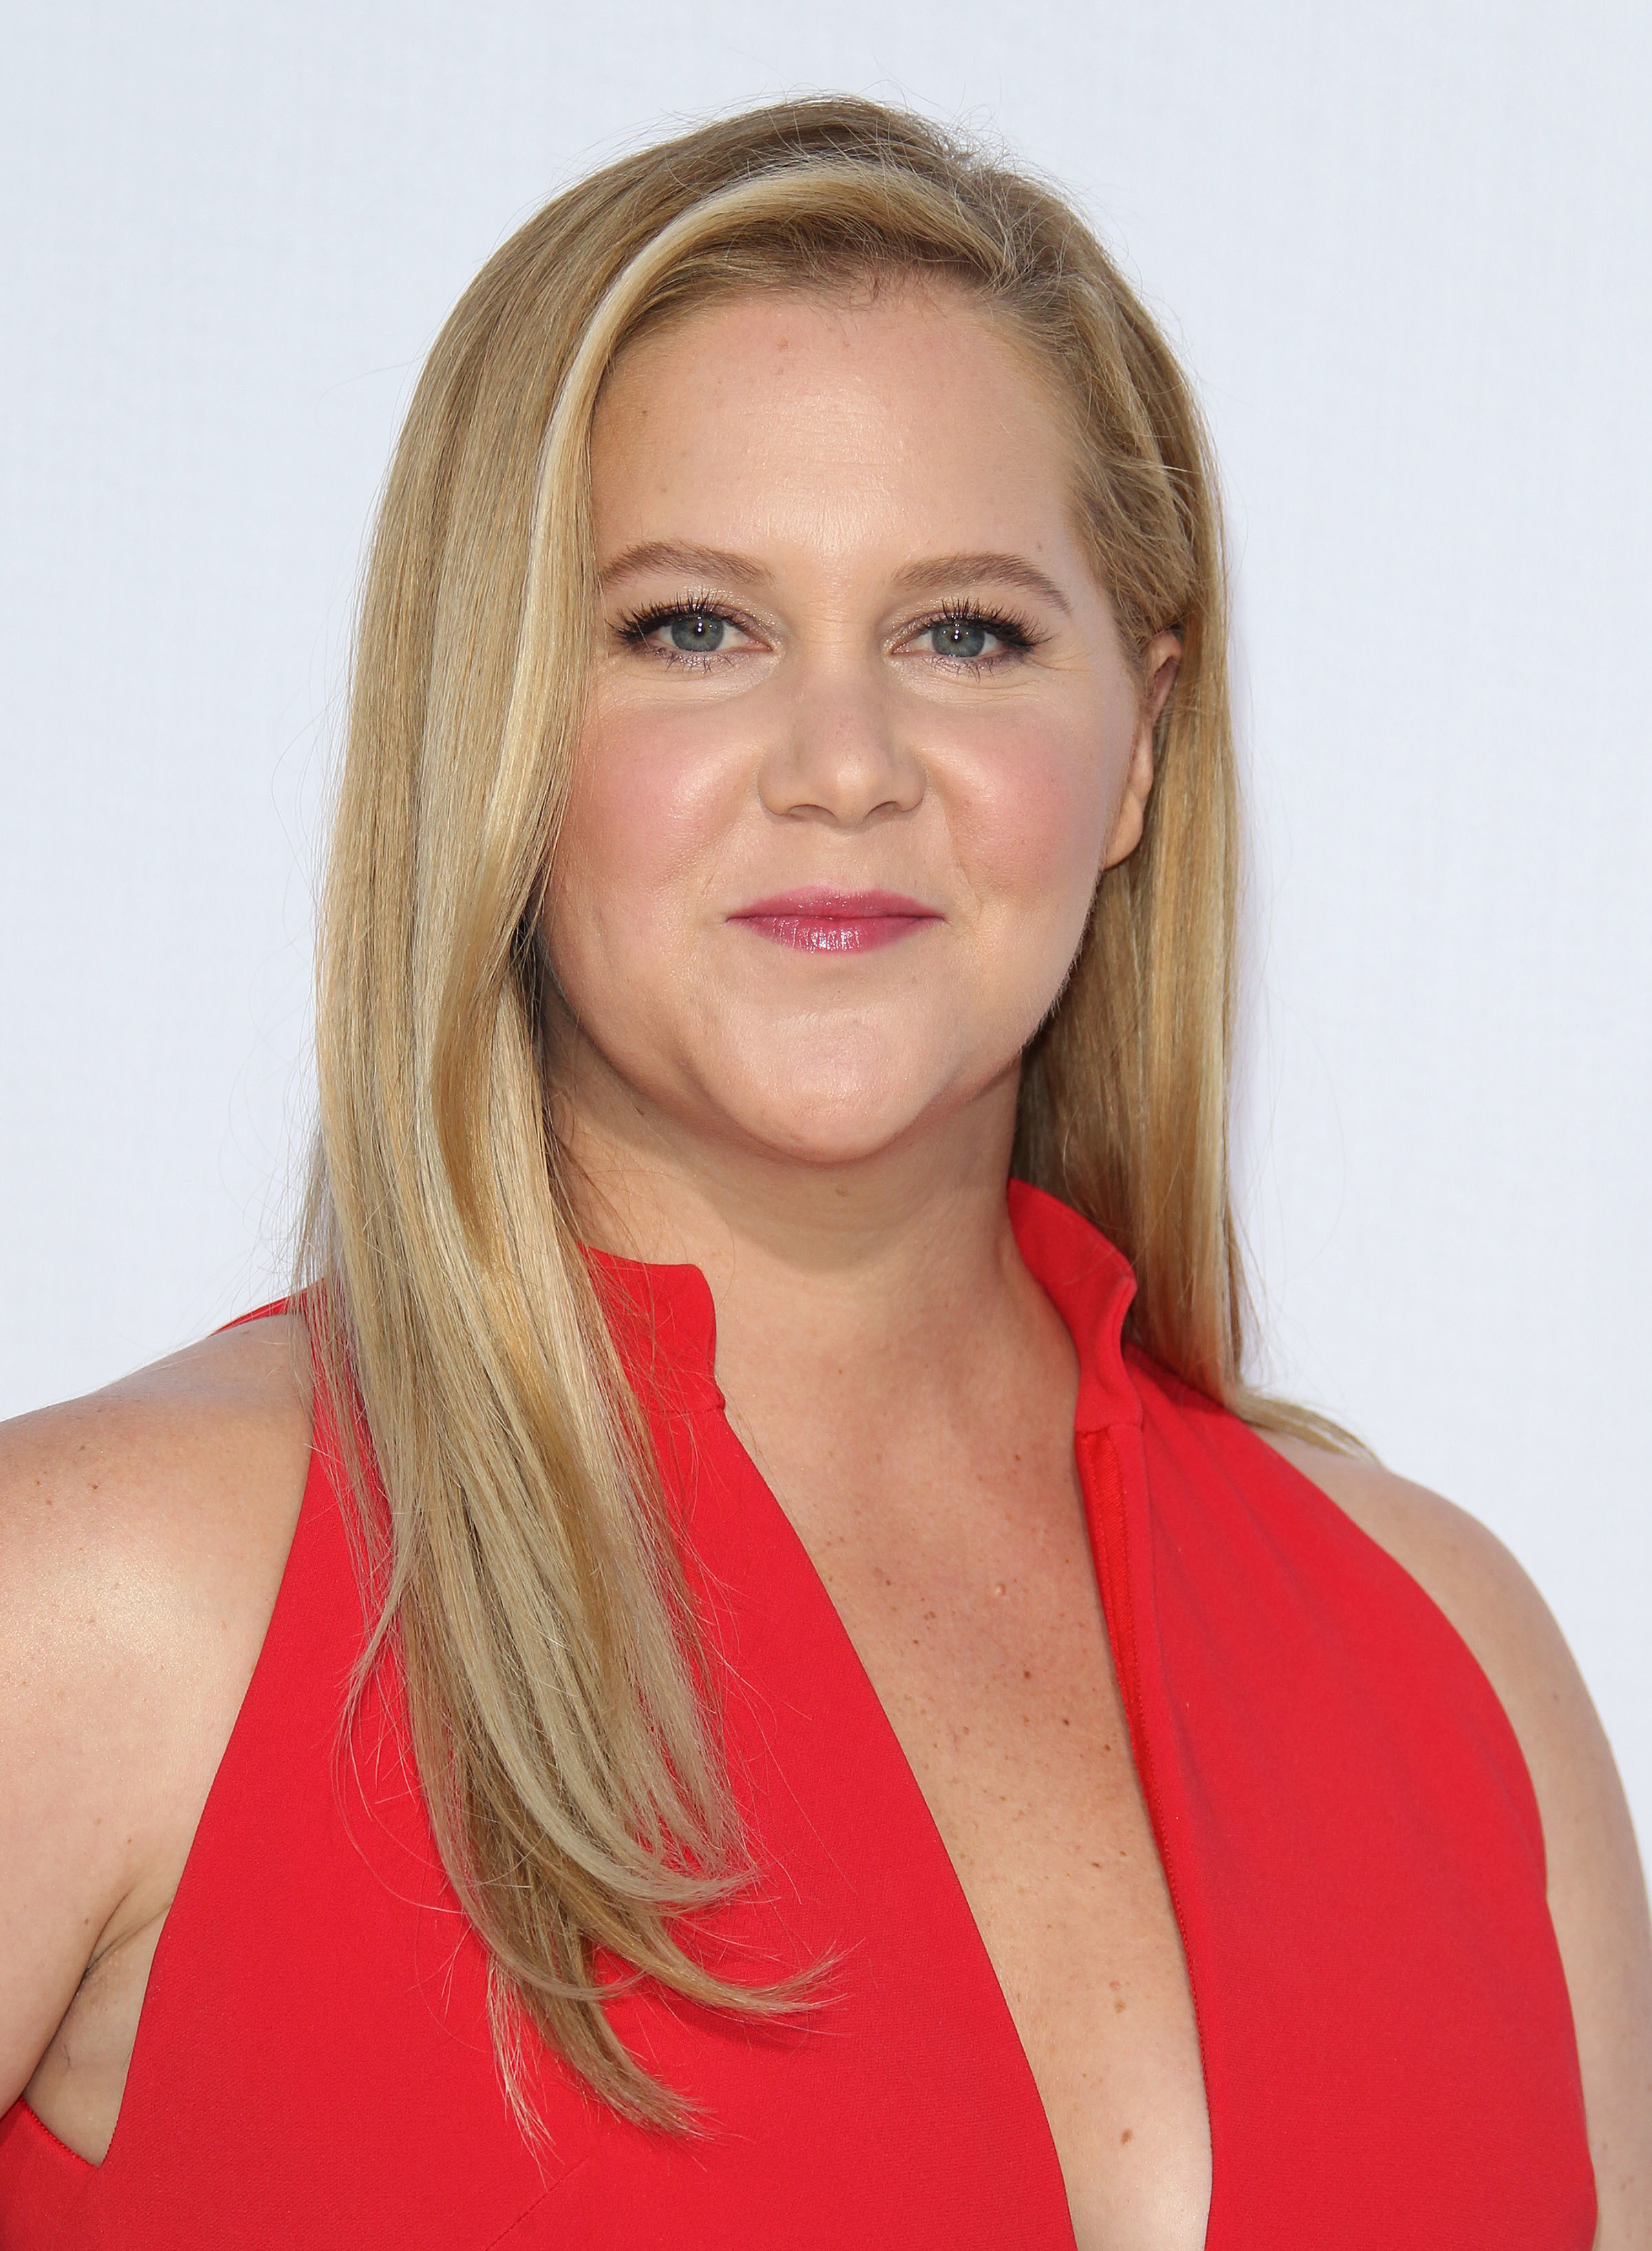 """Amy Schumer attends the """"I Feel Pretty"""" premiere in Los Angeles on April 17, 2018."""